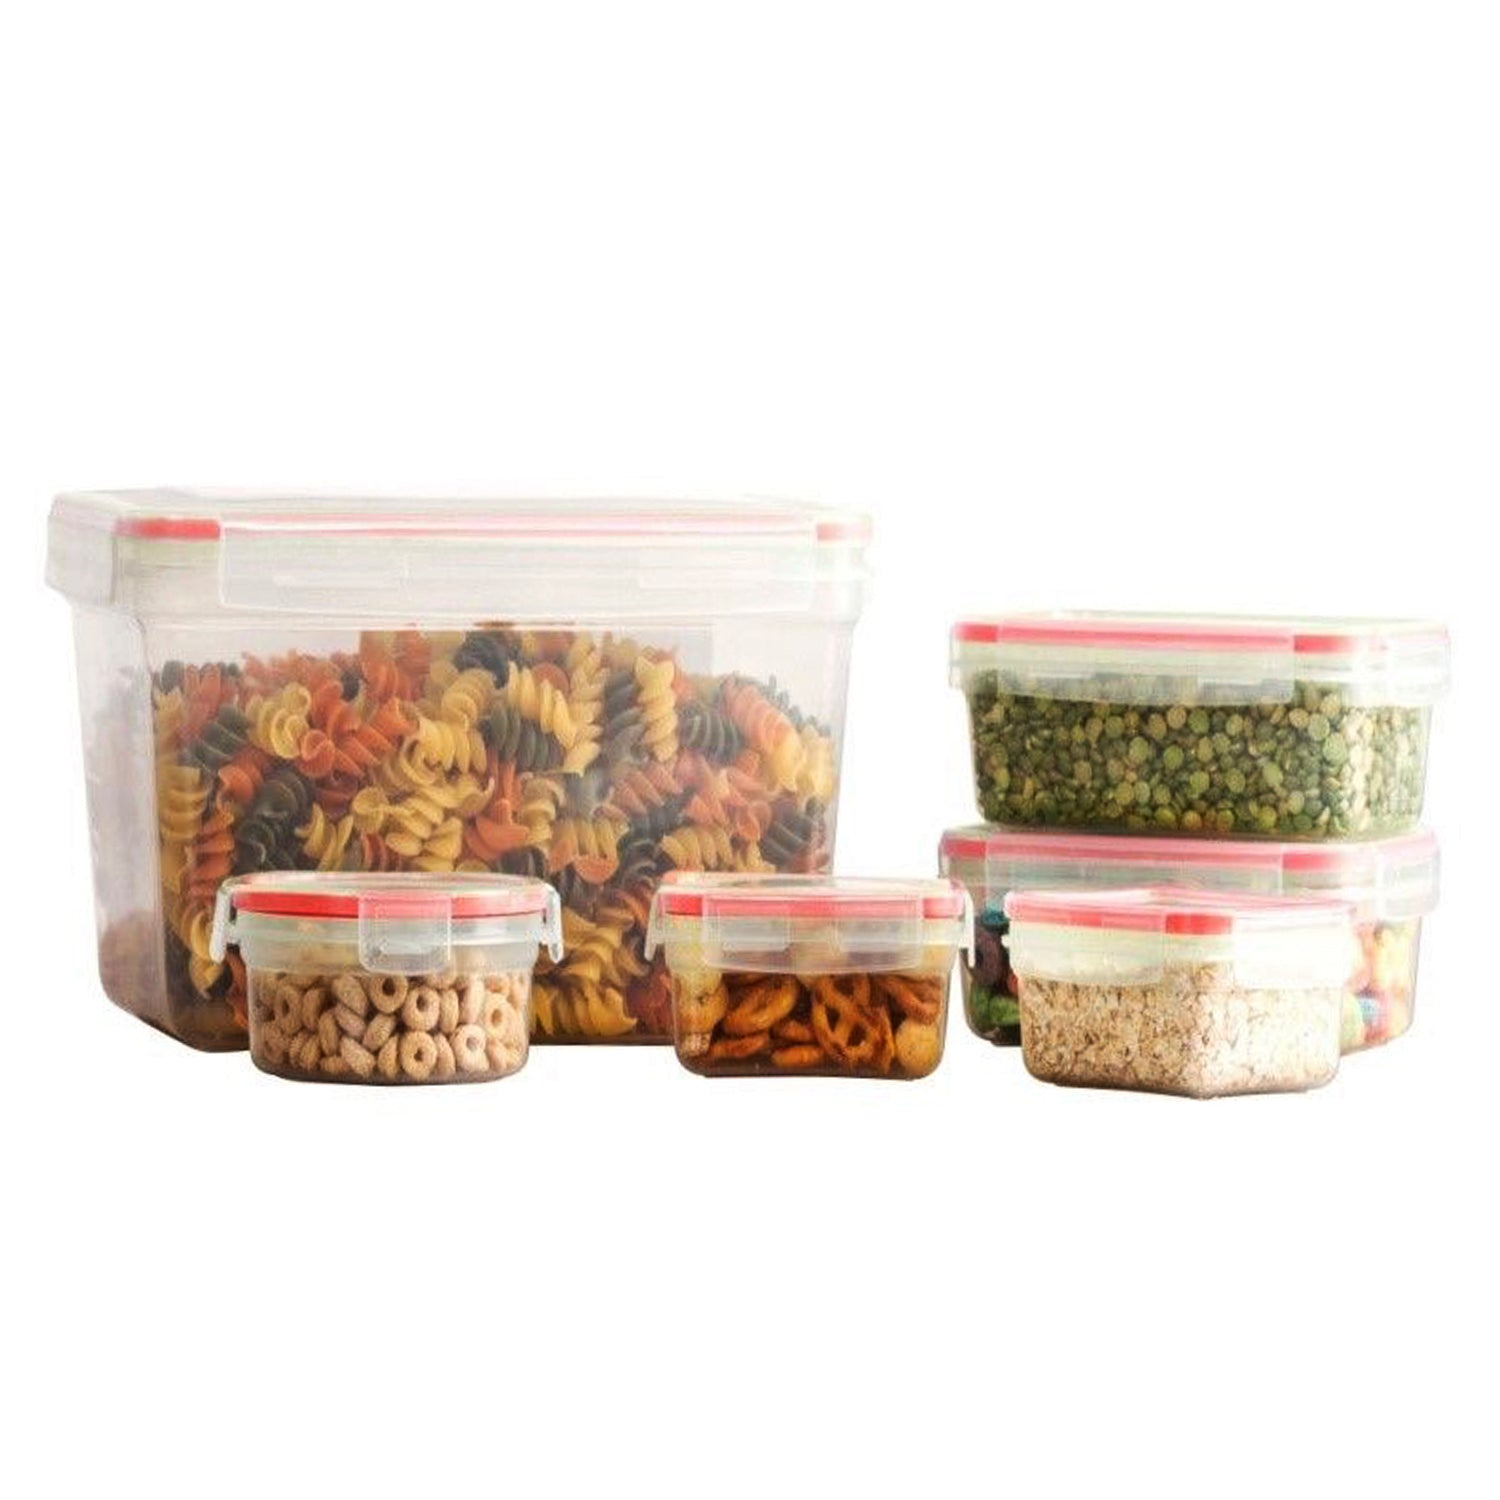 12 Pcs Plastic Mix Food Storage Containers Set With Air Tight Locking Lids